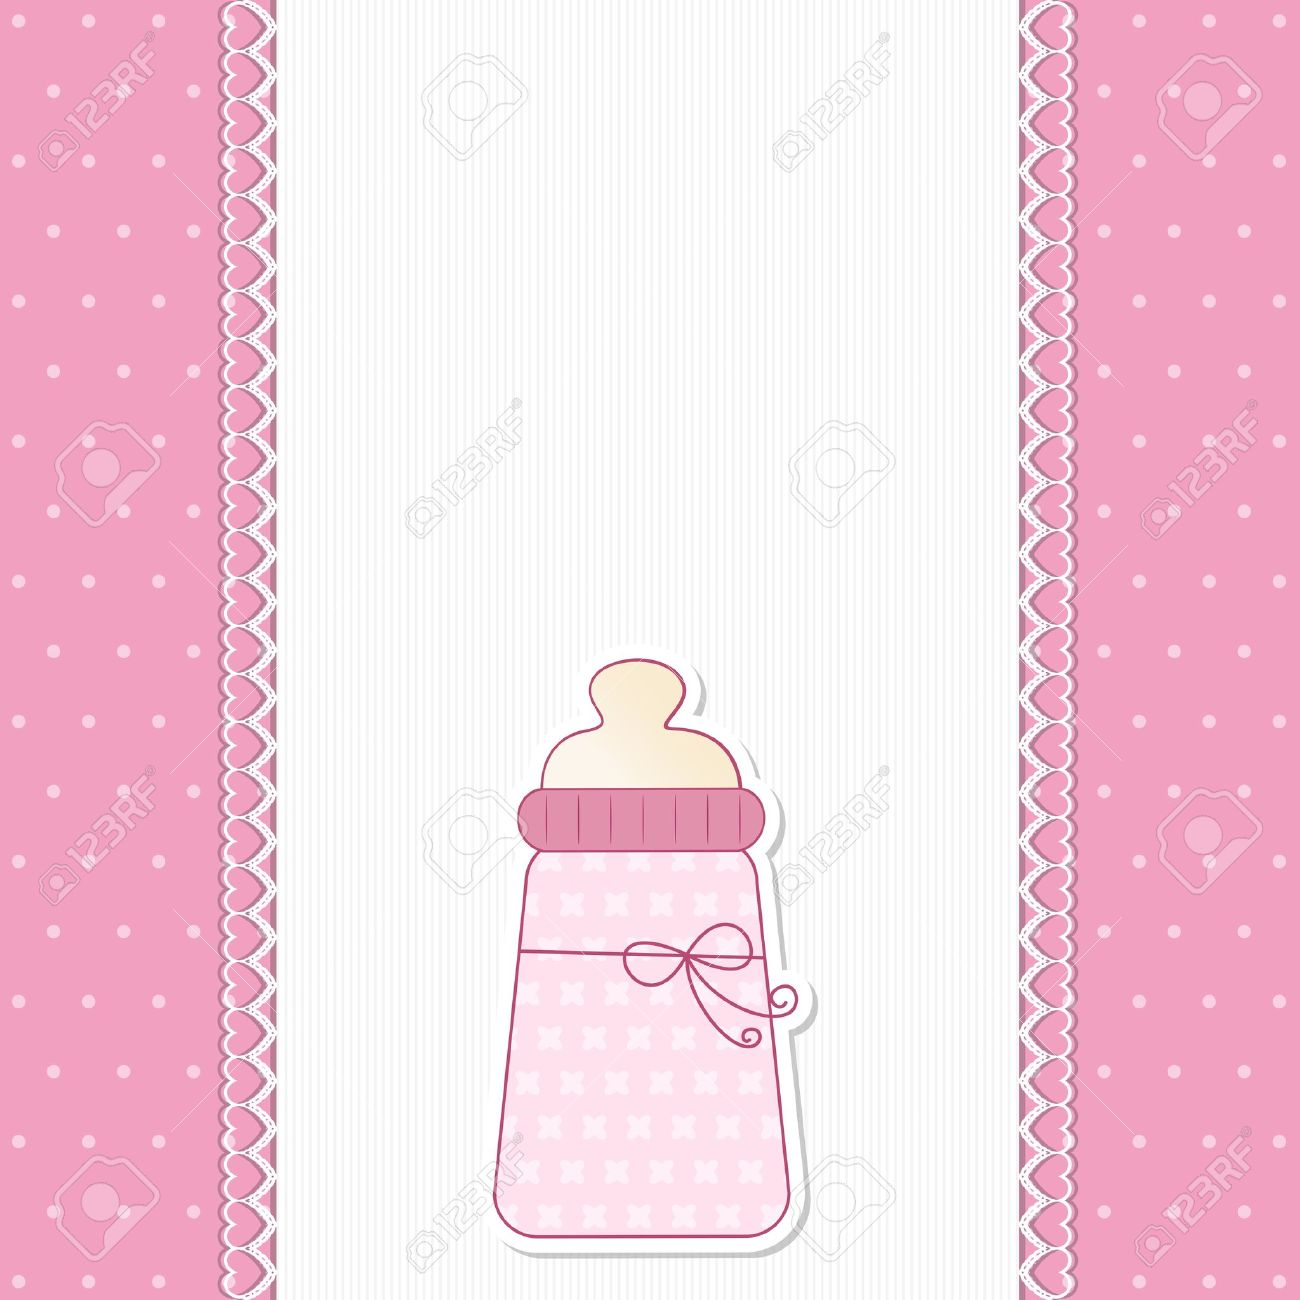 Fullsize Of Baby Shower Background